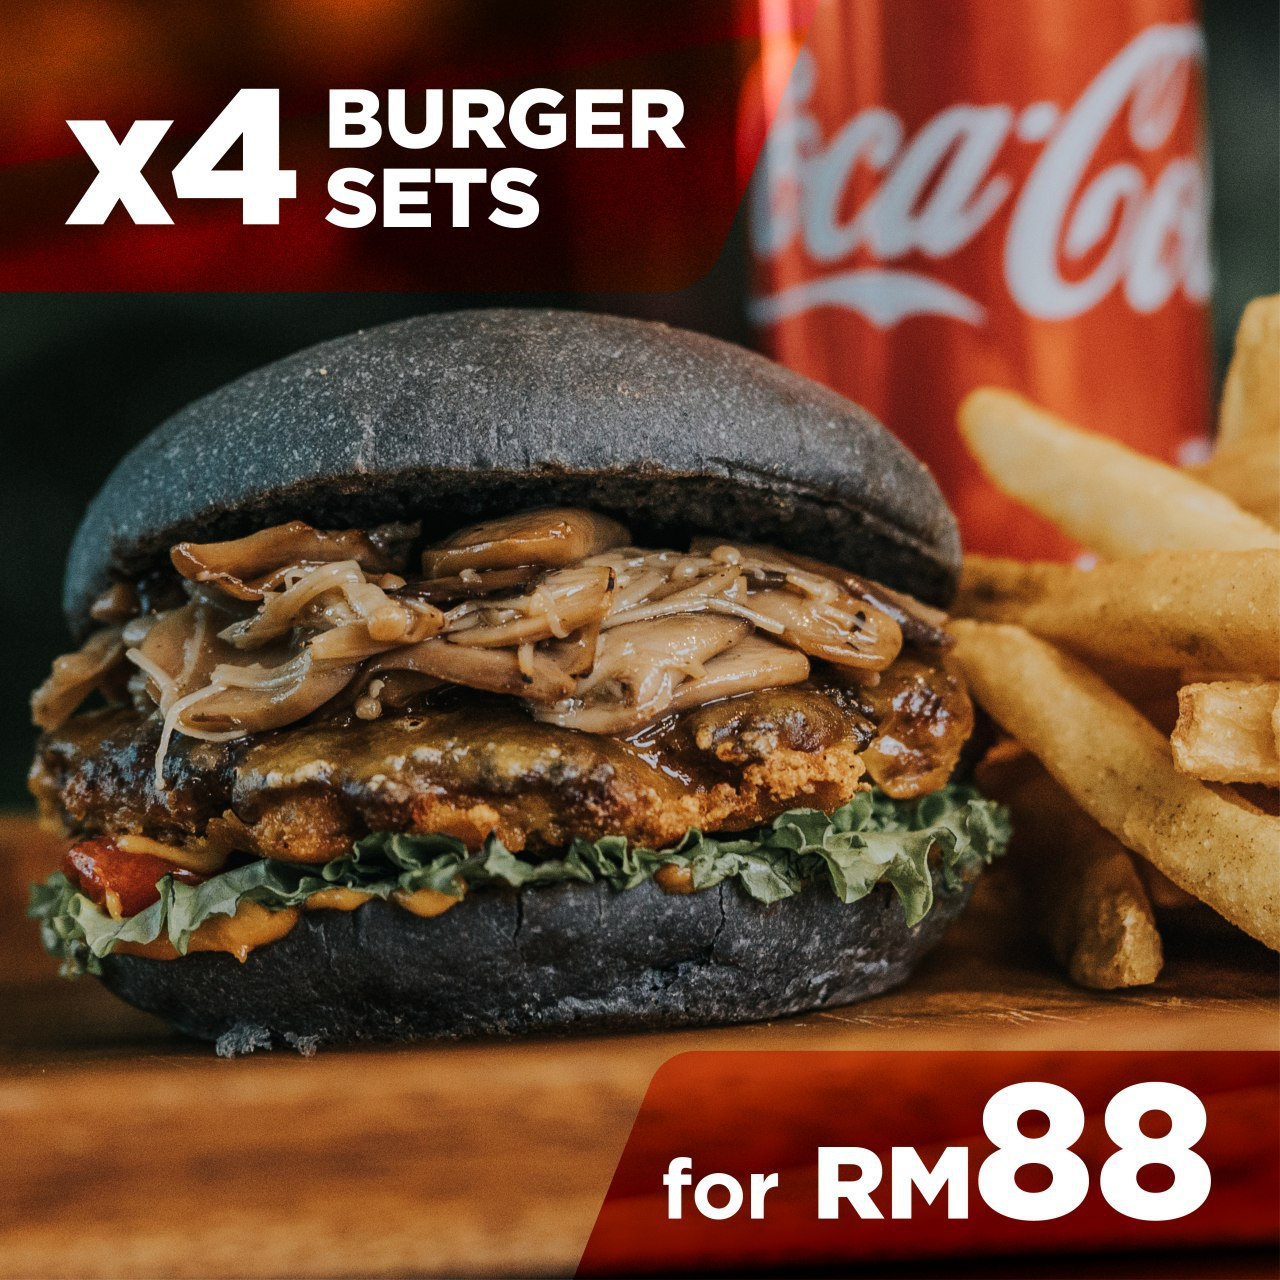 4 Burger Sets For Only RM88 😎